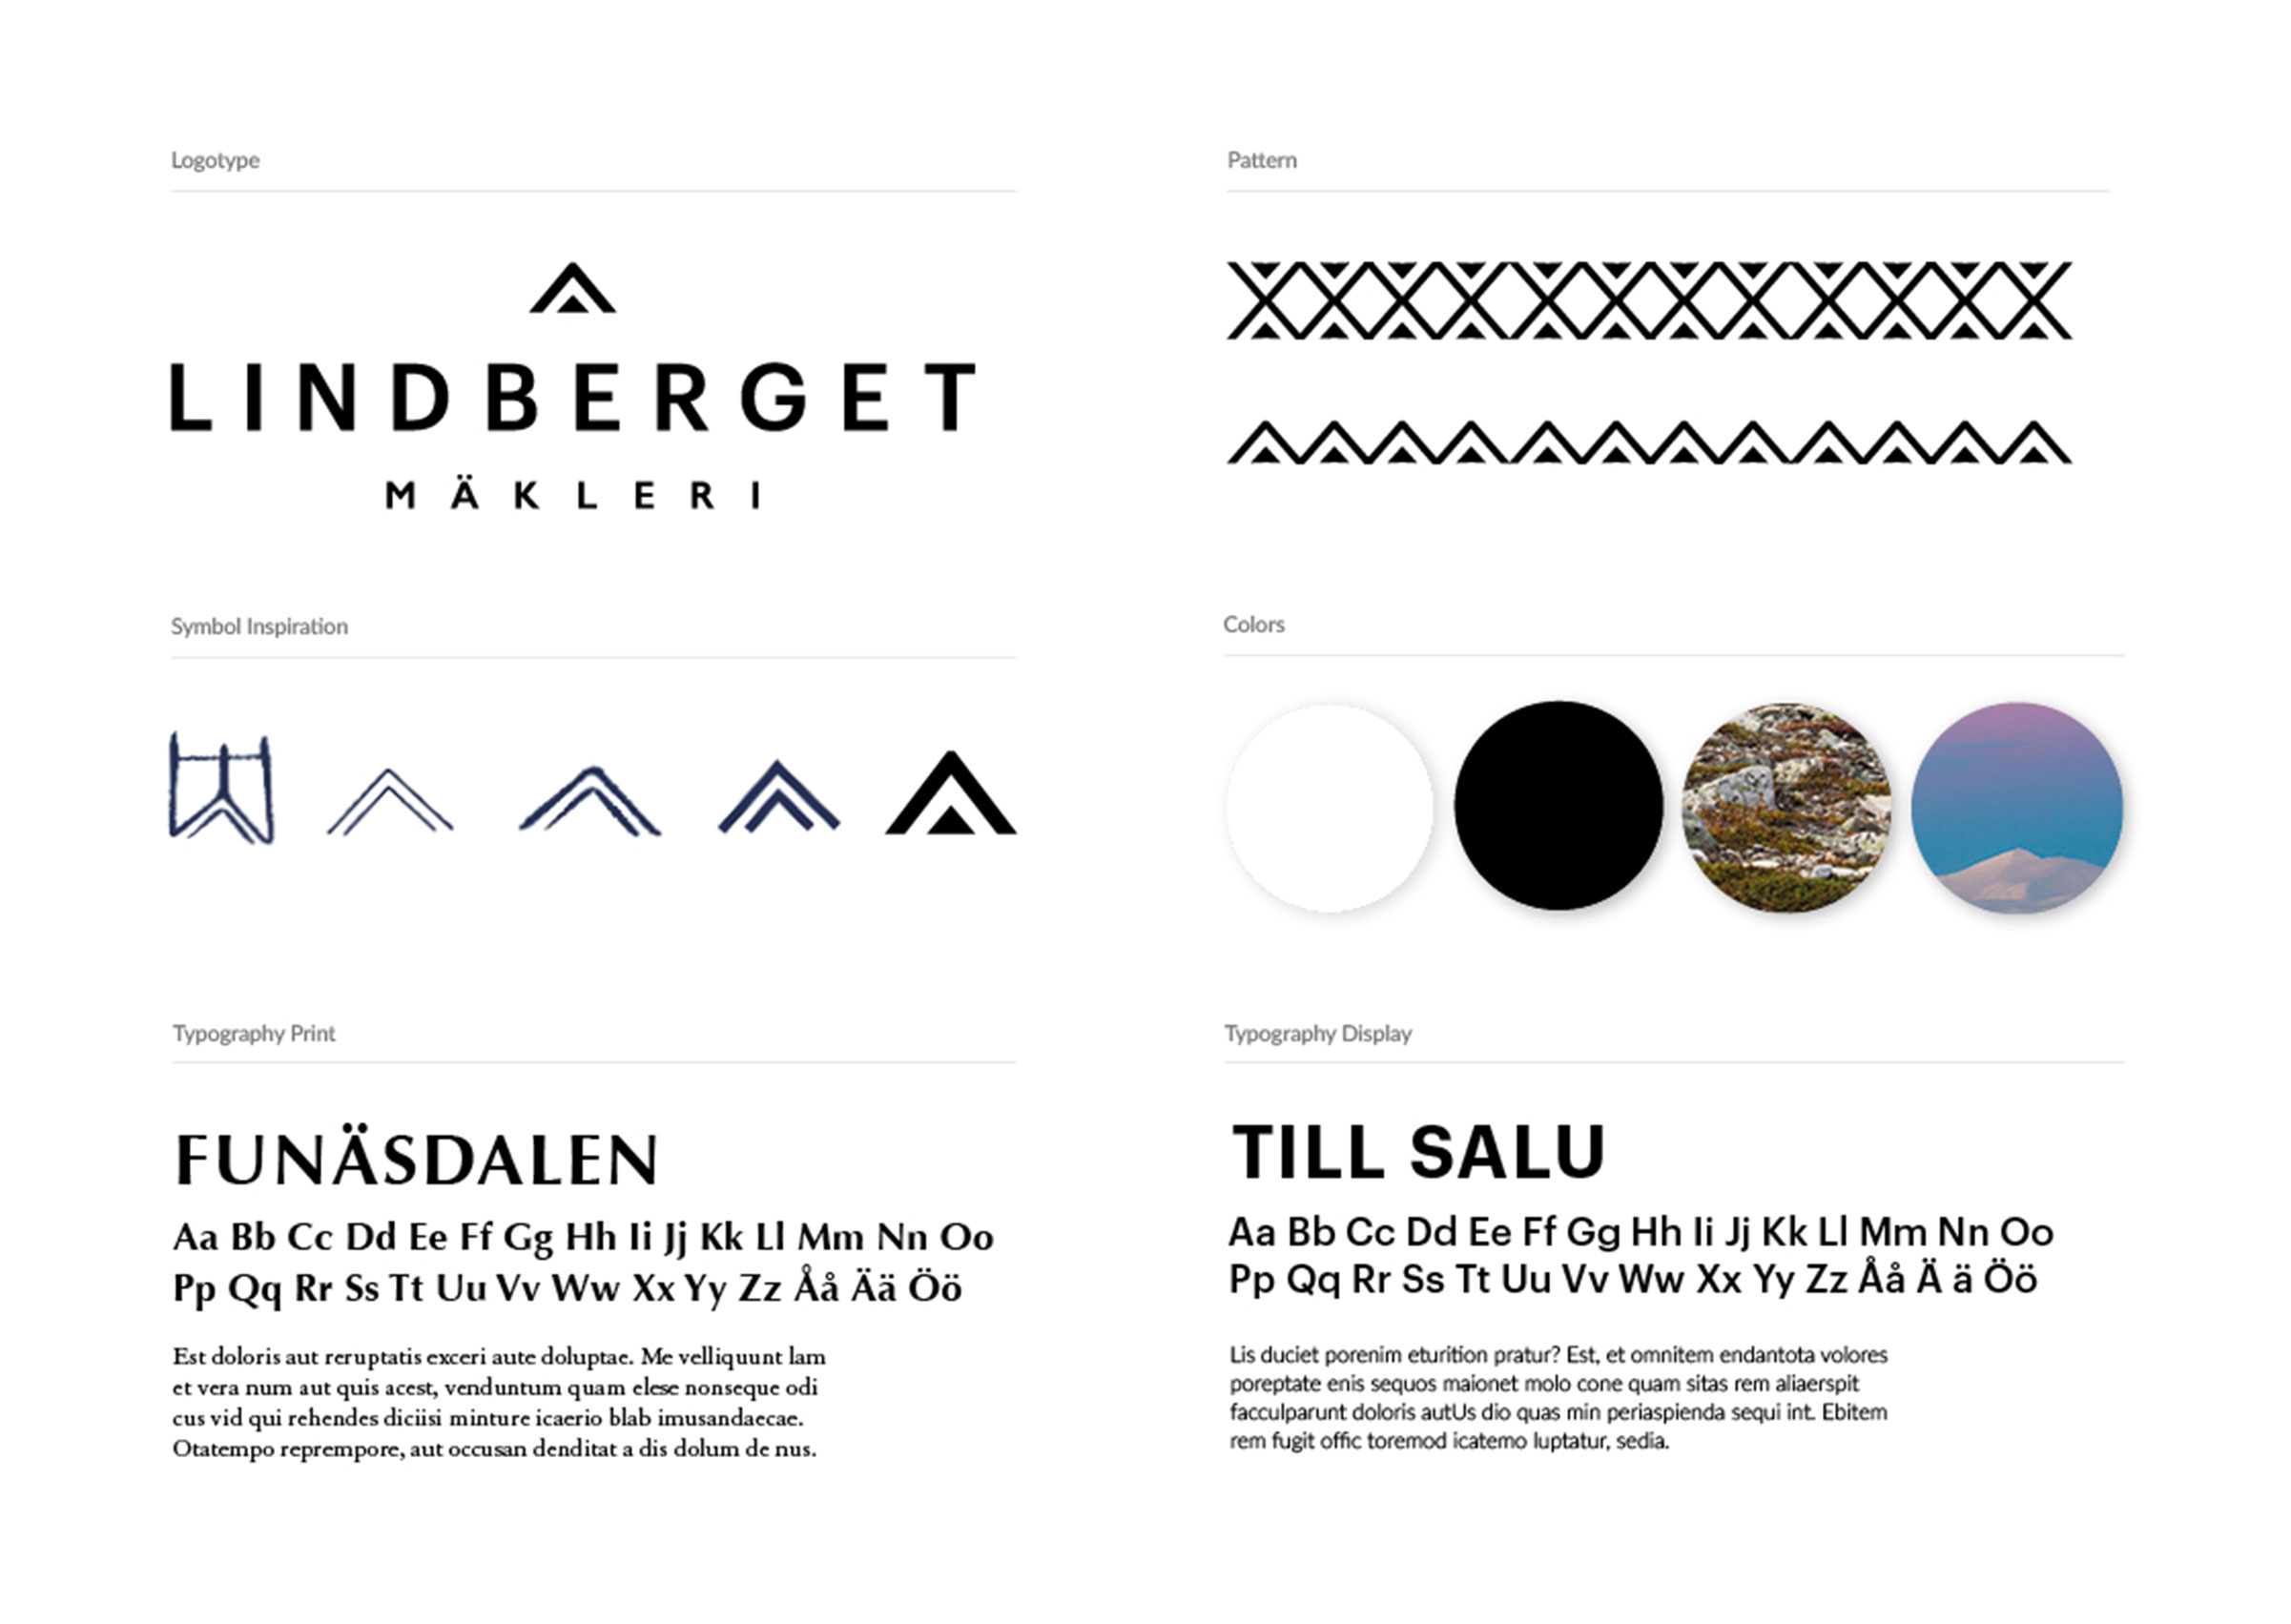 Lindberget, visuall guidelines